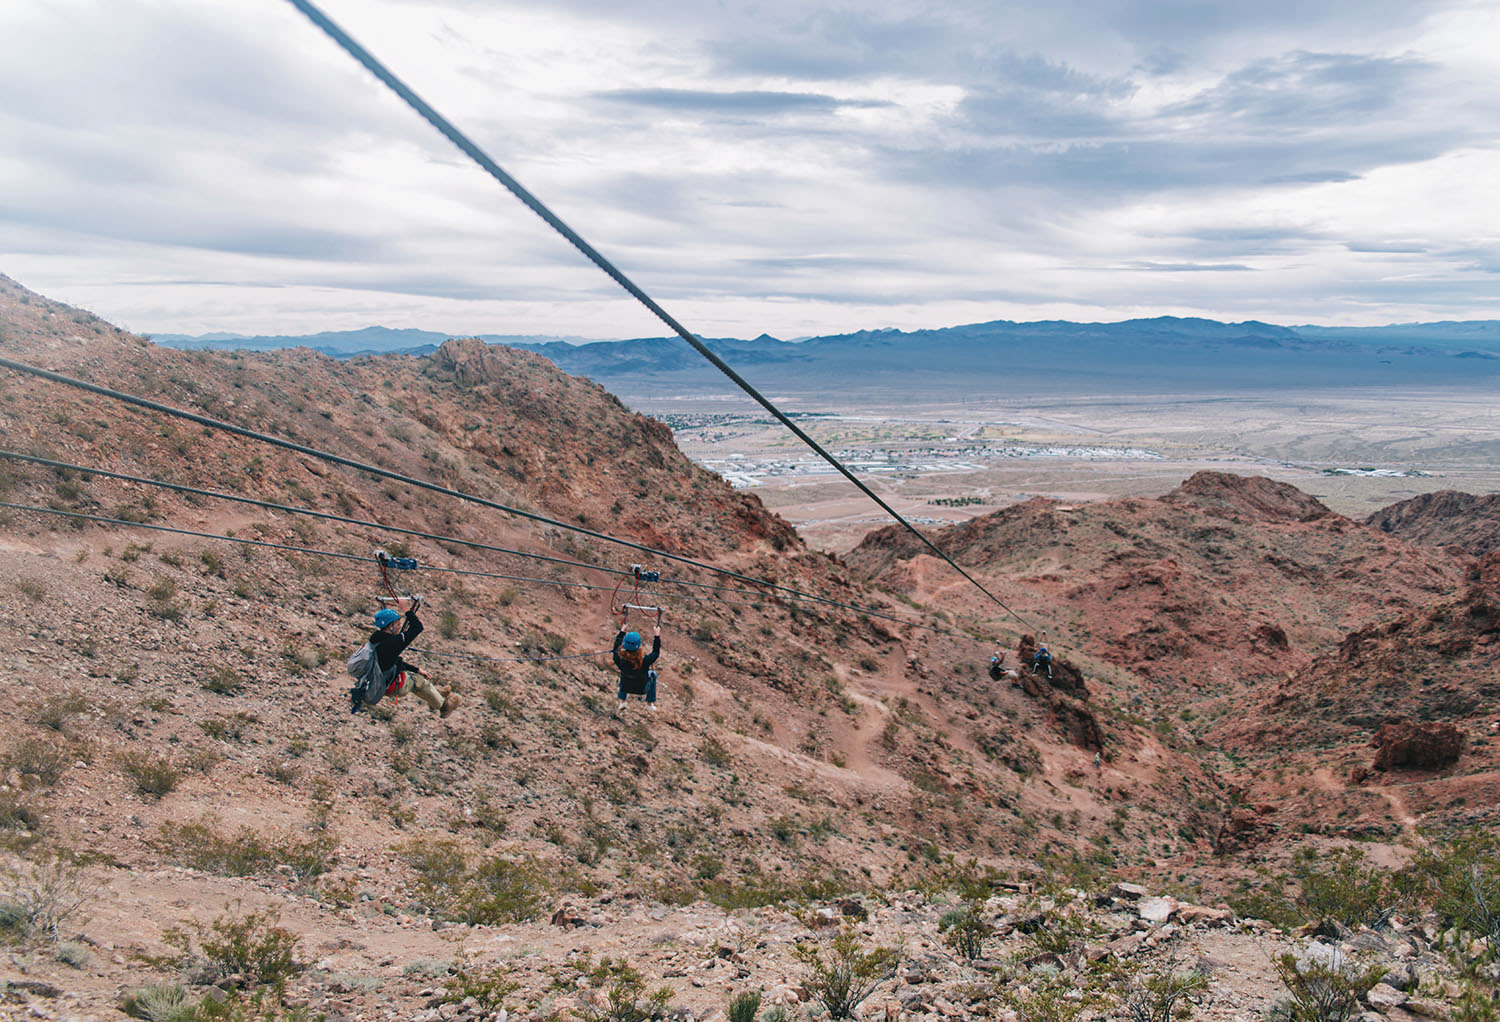 Las Vegas Adventures: Zipline over the Mojave Desert with Flightlinez